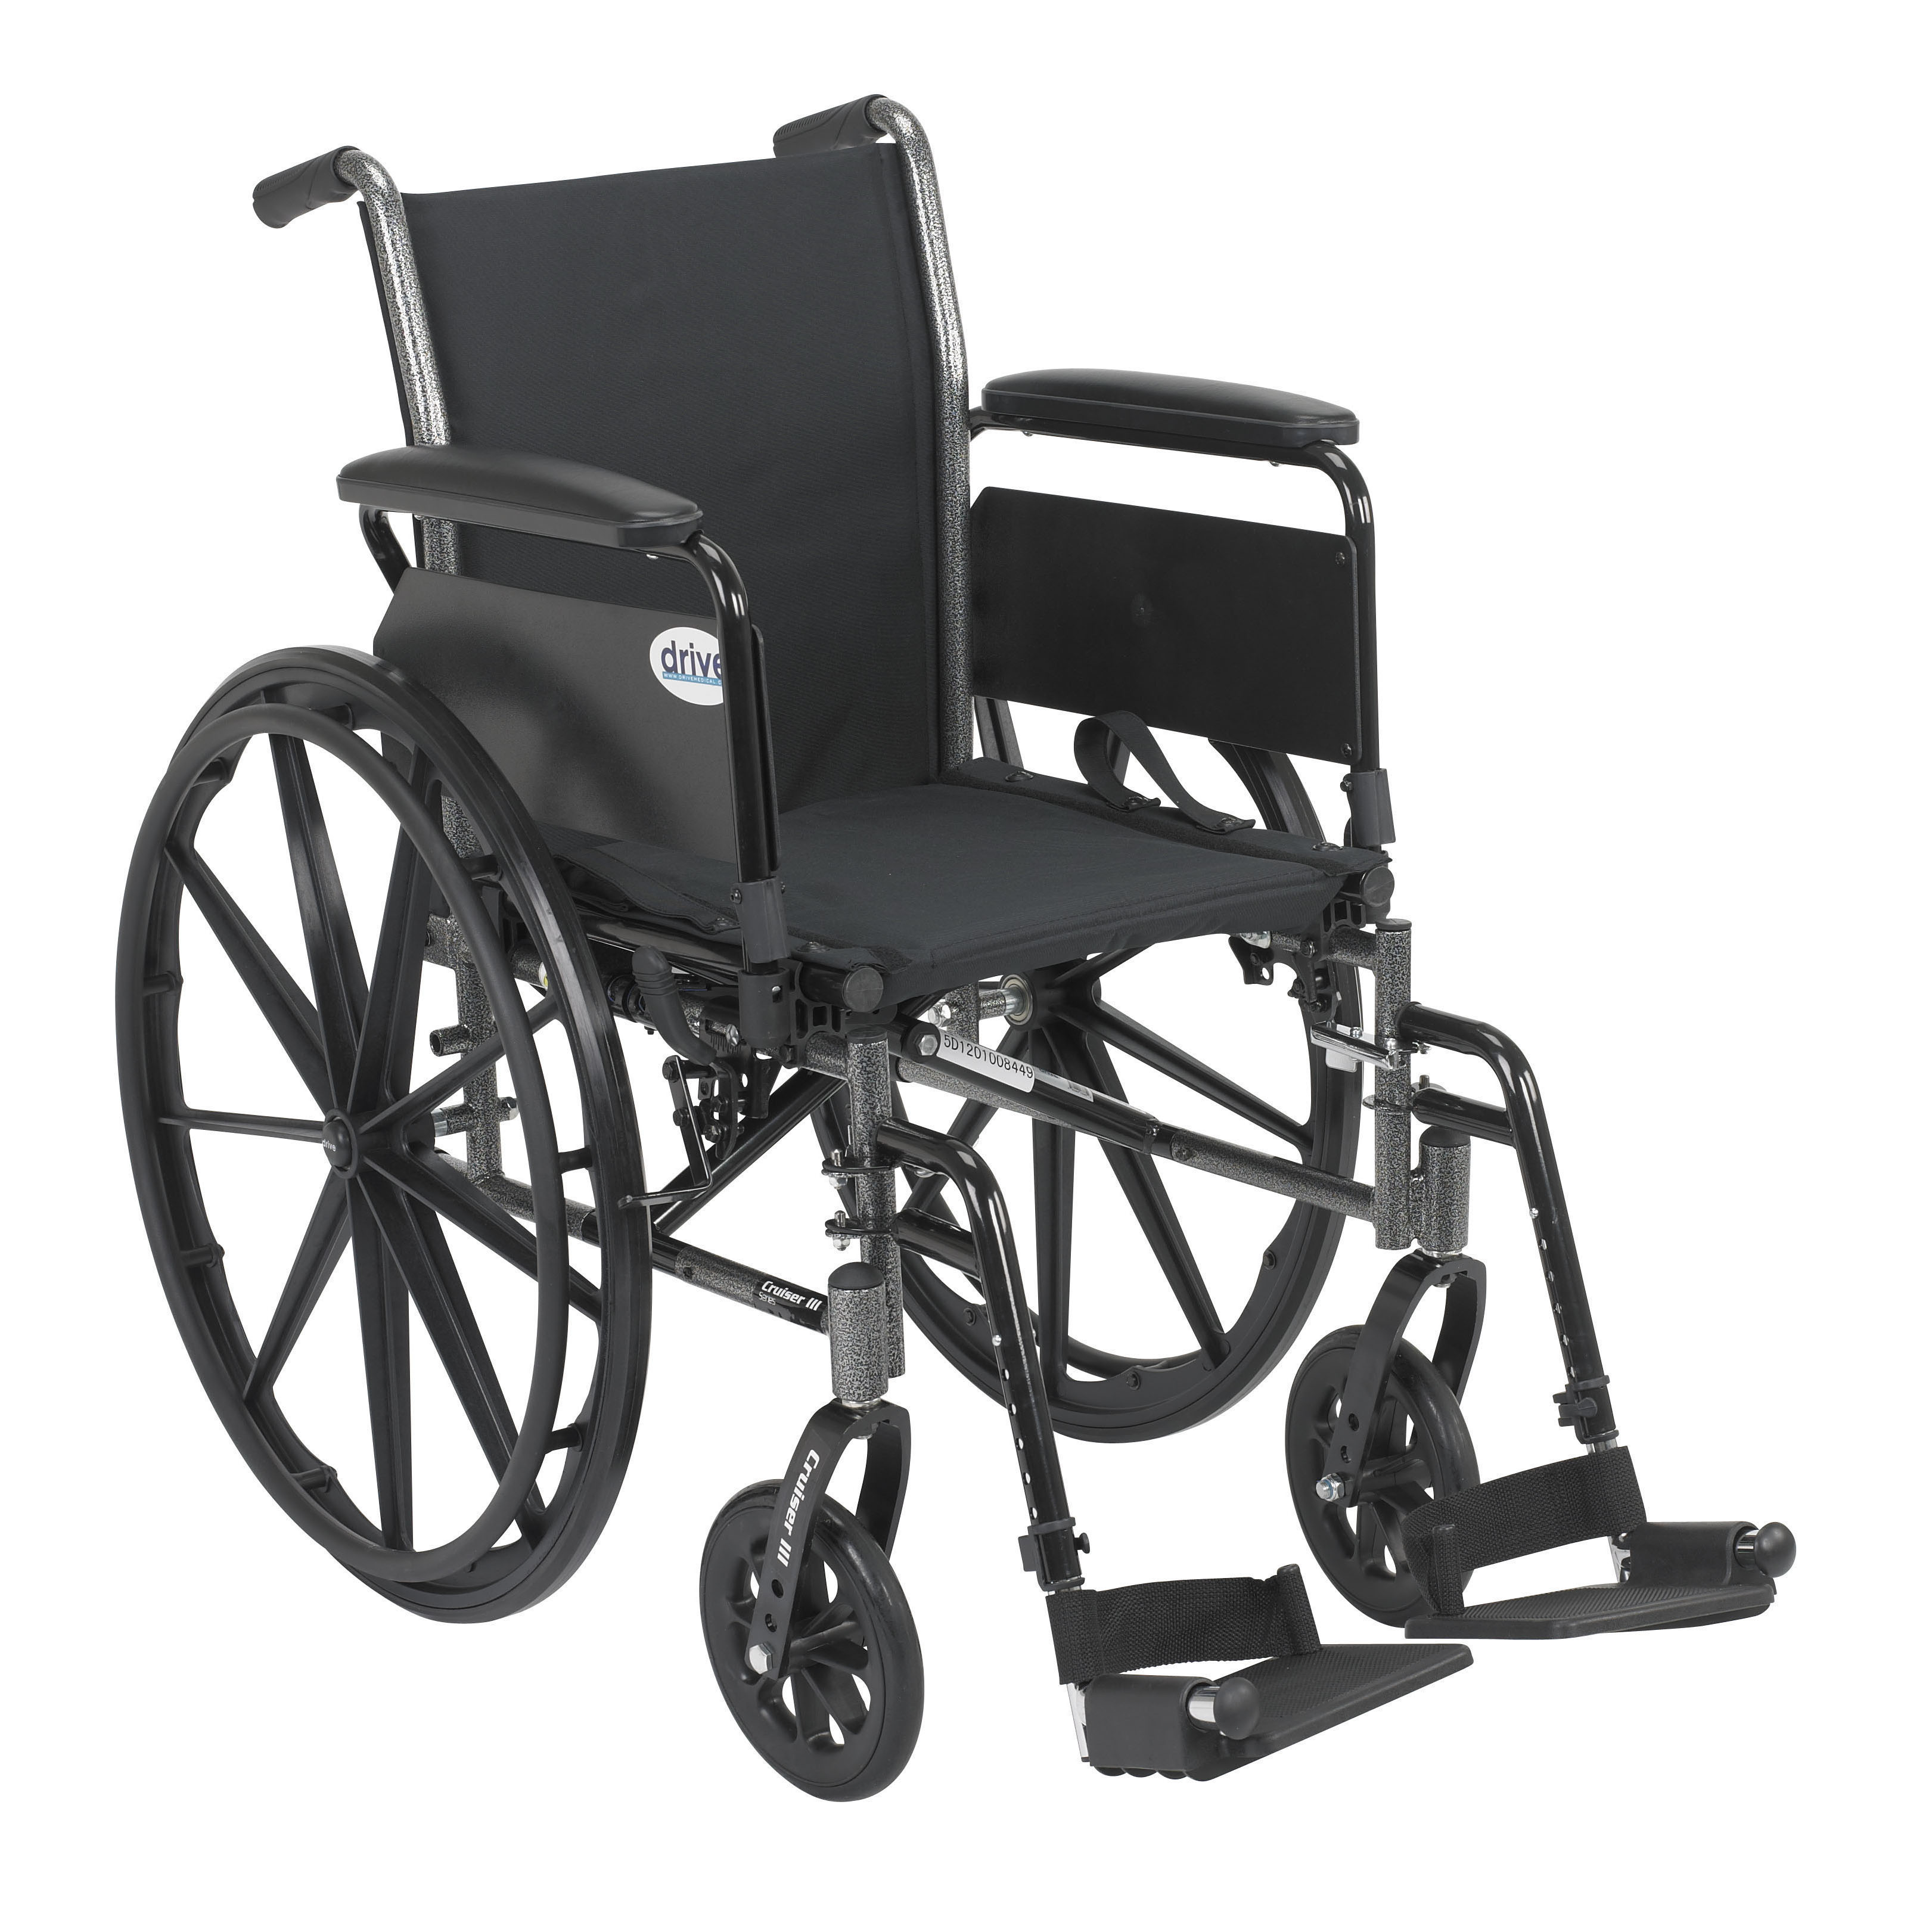 Drive Medical Cruiser III Light Weight Wheelchair with Flip Back Removable Full Arms, Swing away Footrests